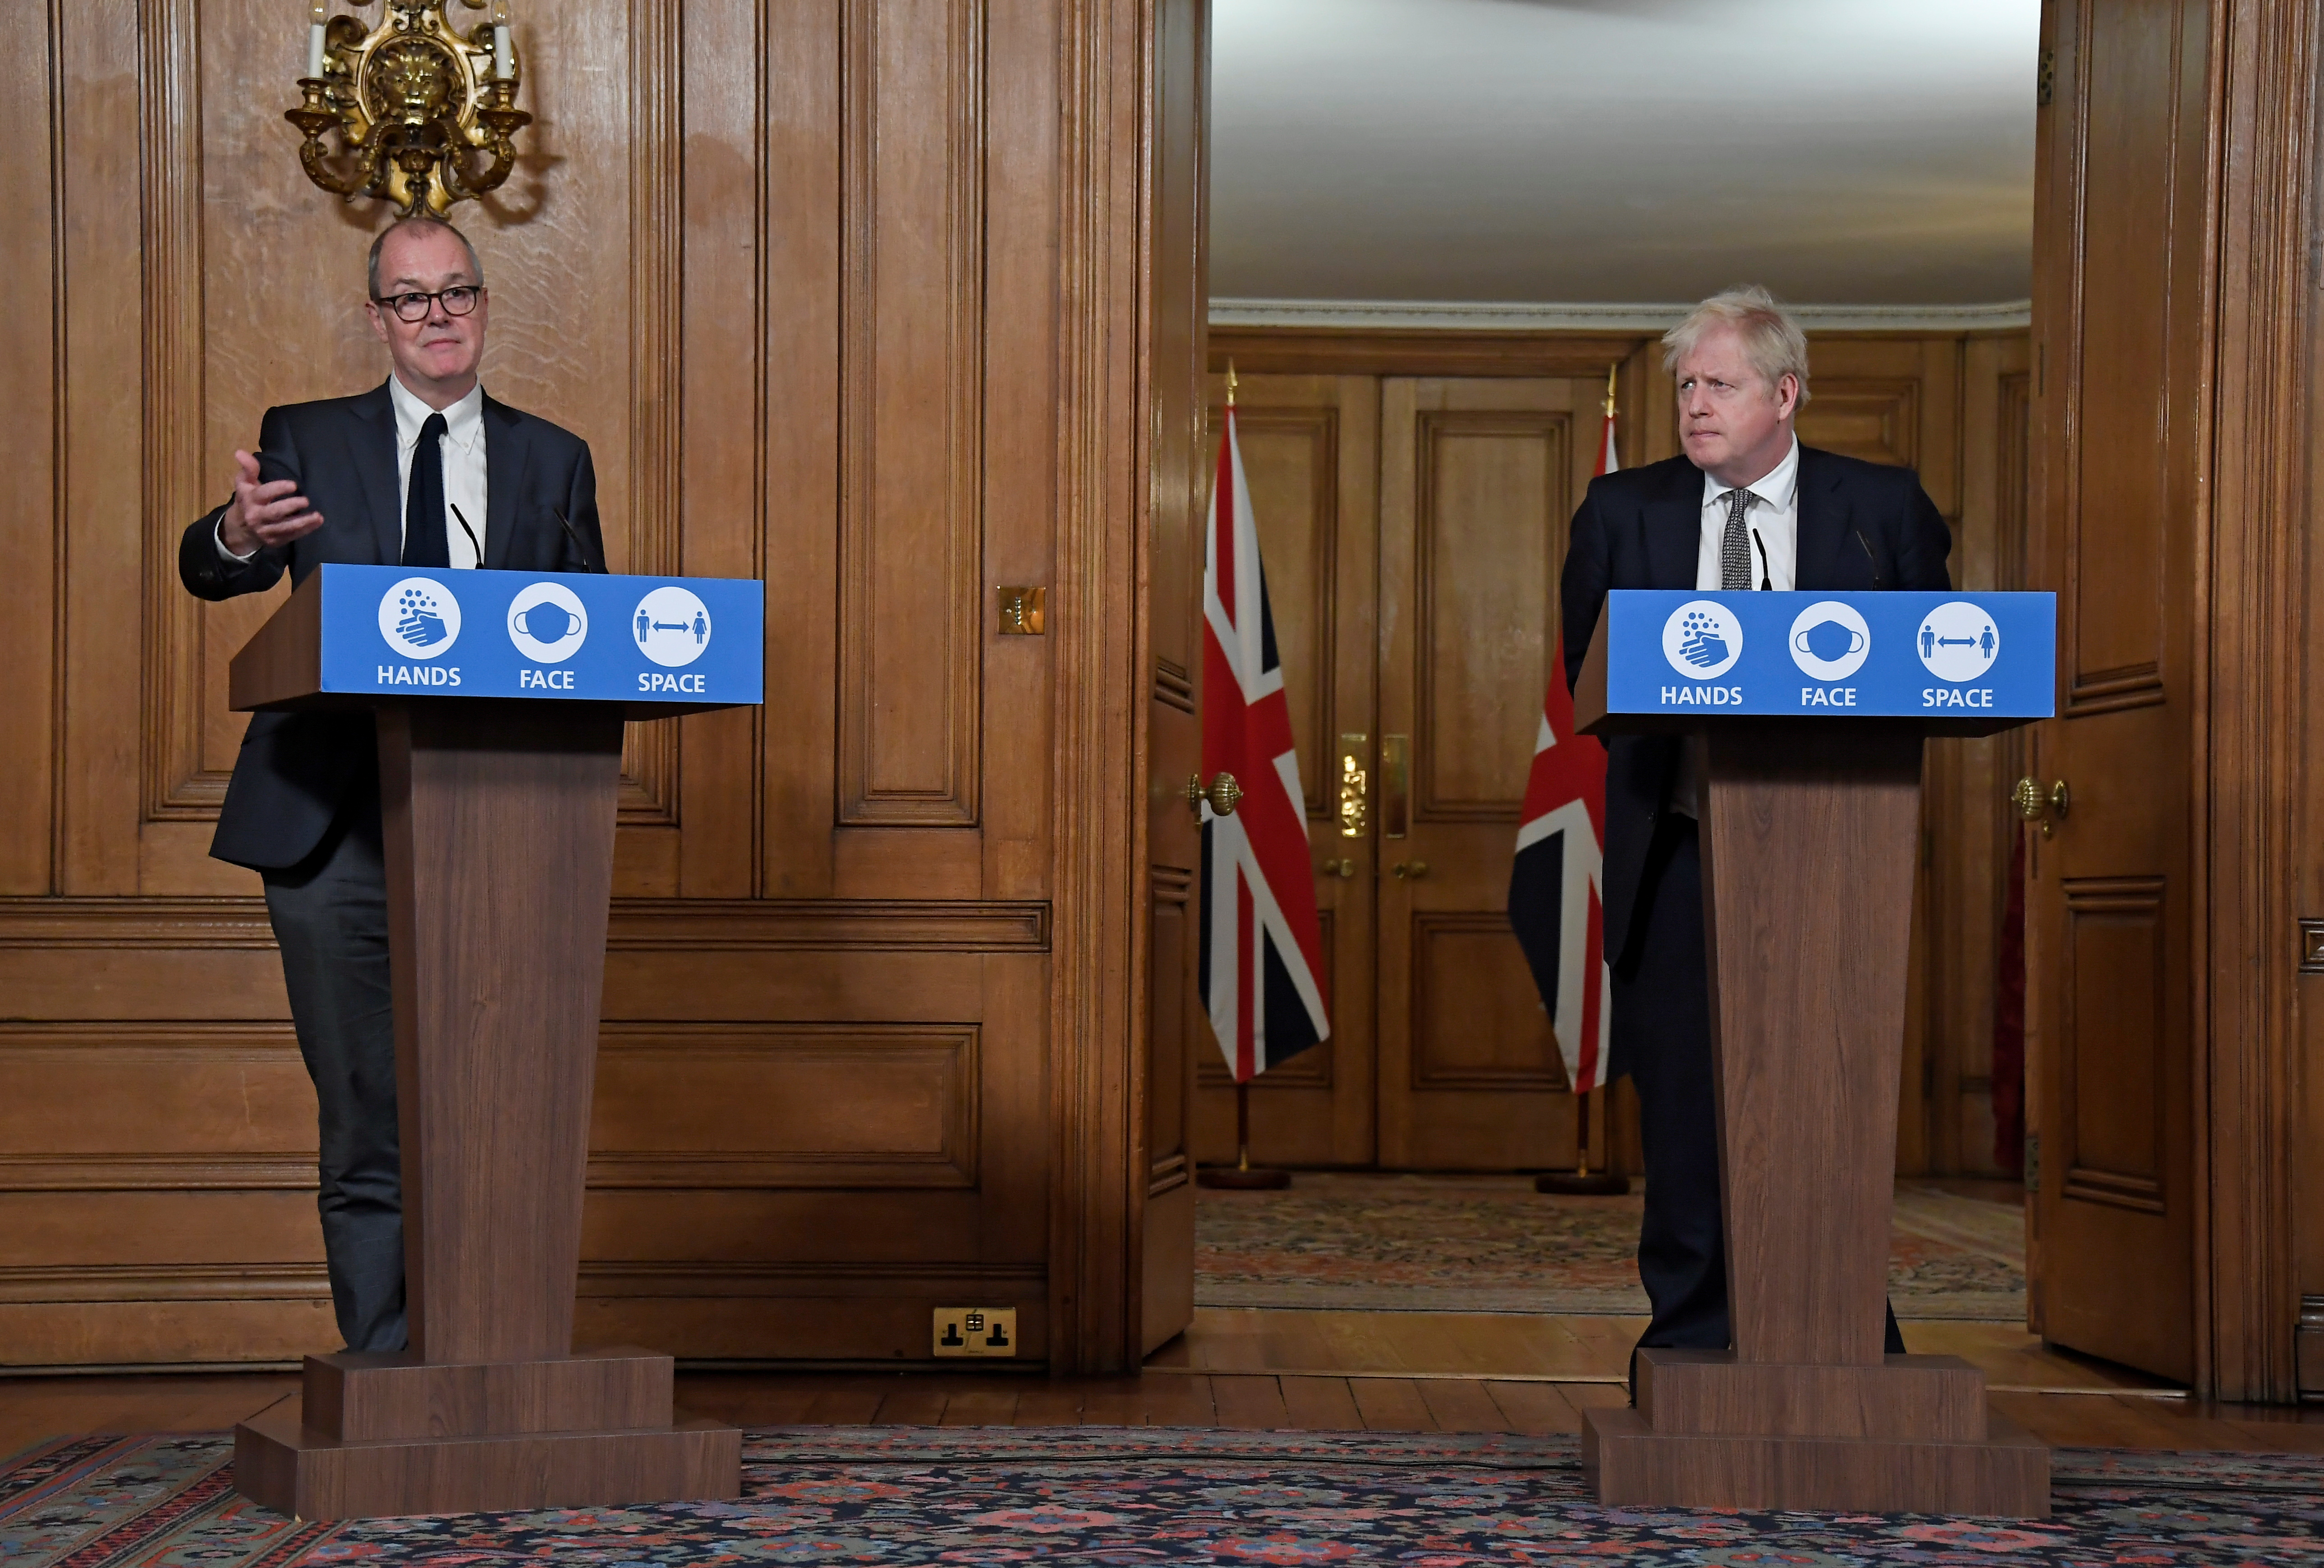 Britain's Prime Minister Boris Johnson watches Chief Scientific Adviser Sir Patrick Vallance speak during a press conference where he is expected to announce new restrictions to help combat the coronavirus disease (COVID-19) outbreak, at 10 Downing Street in London, Britain October 31, 2020. Alberto Pezzali/Pool via REUTERS